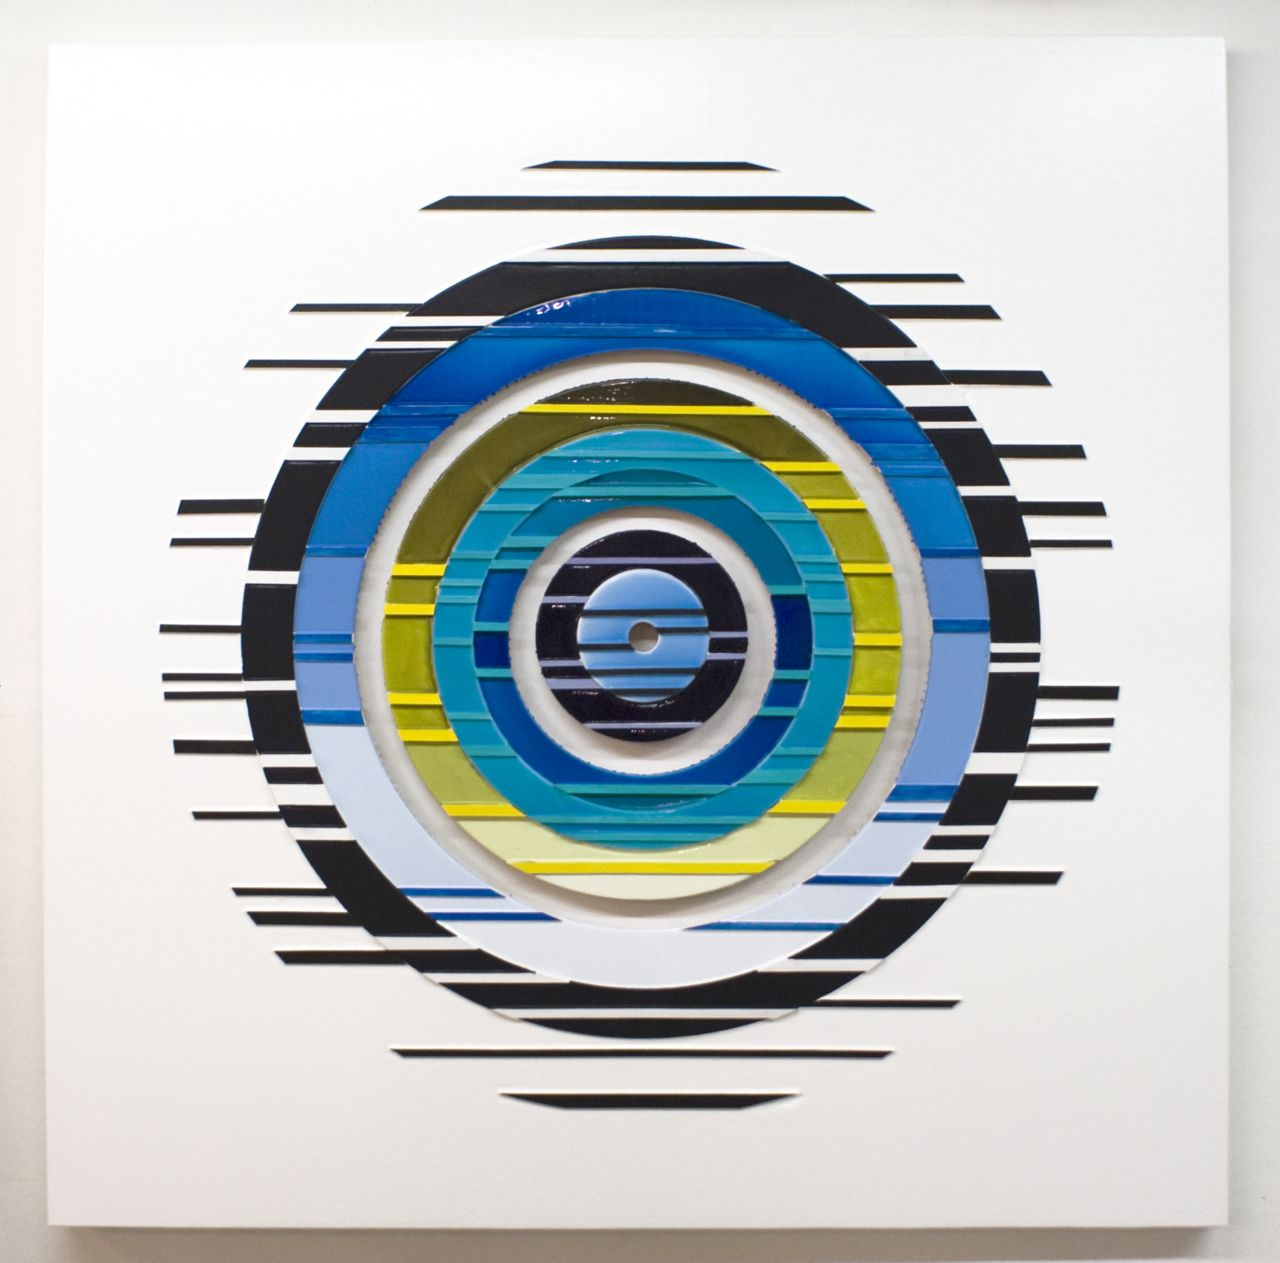 'Supersymmetry II, Poured acrylic paint and wood on panel, 60 x 60 in, 2012